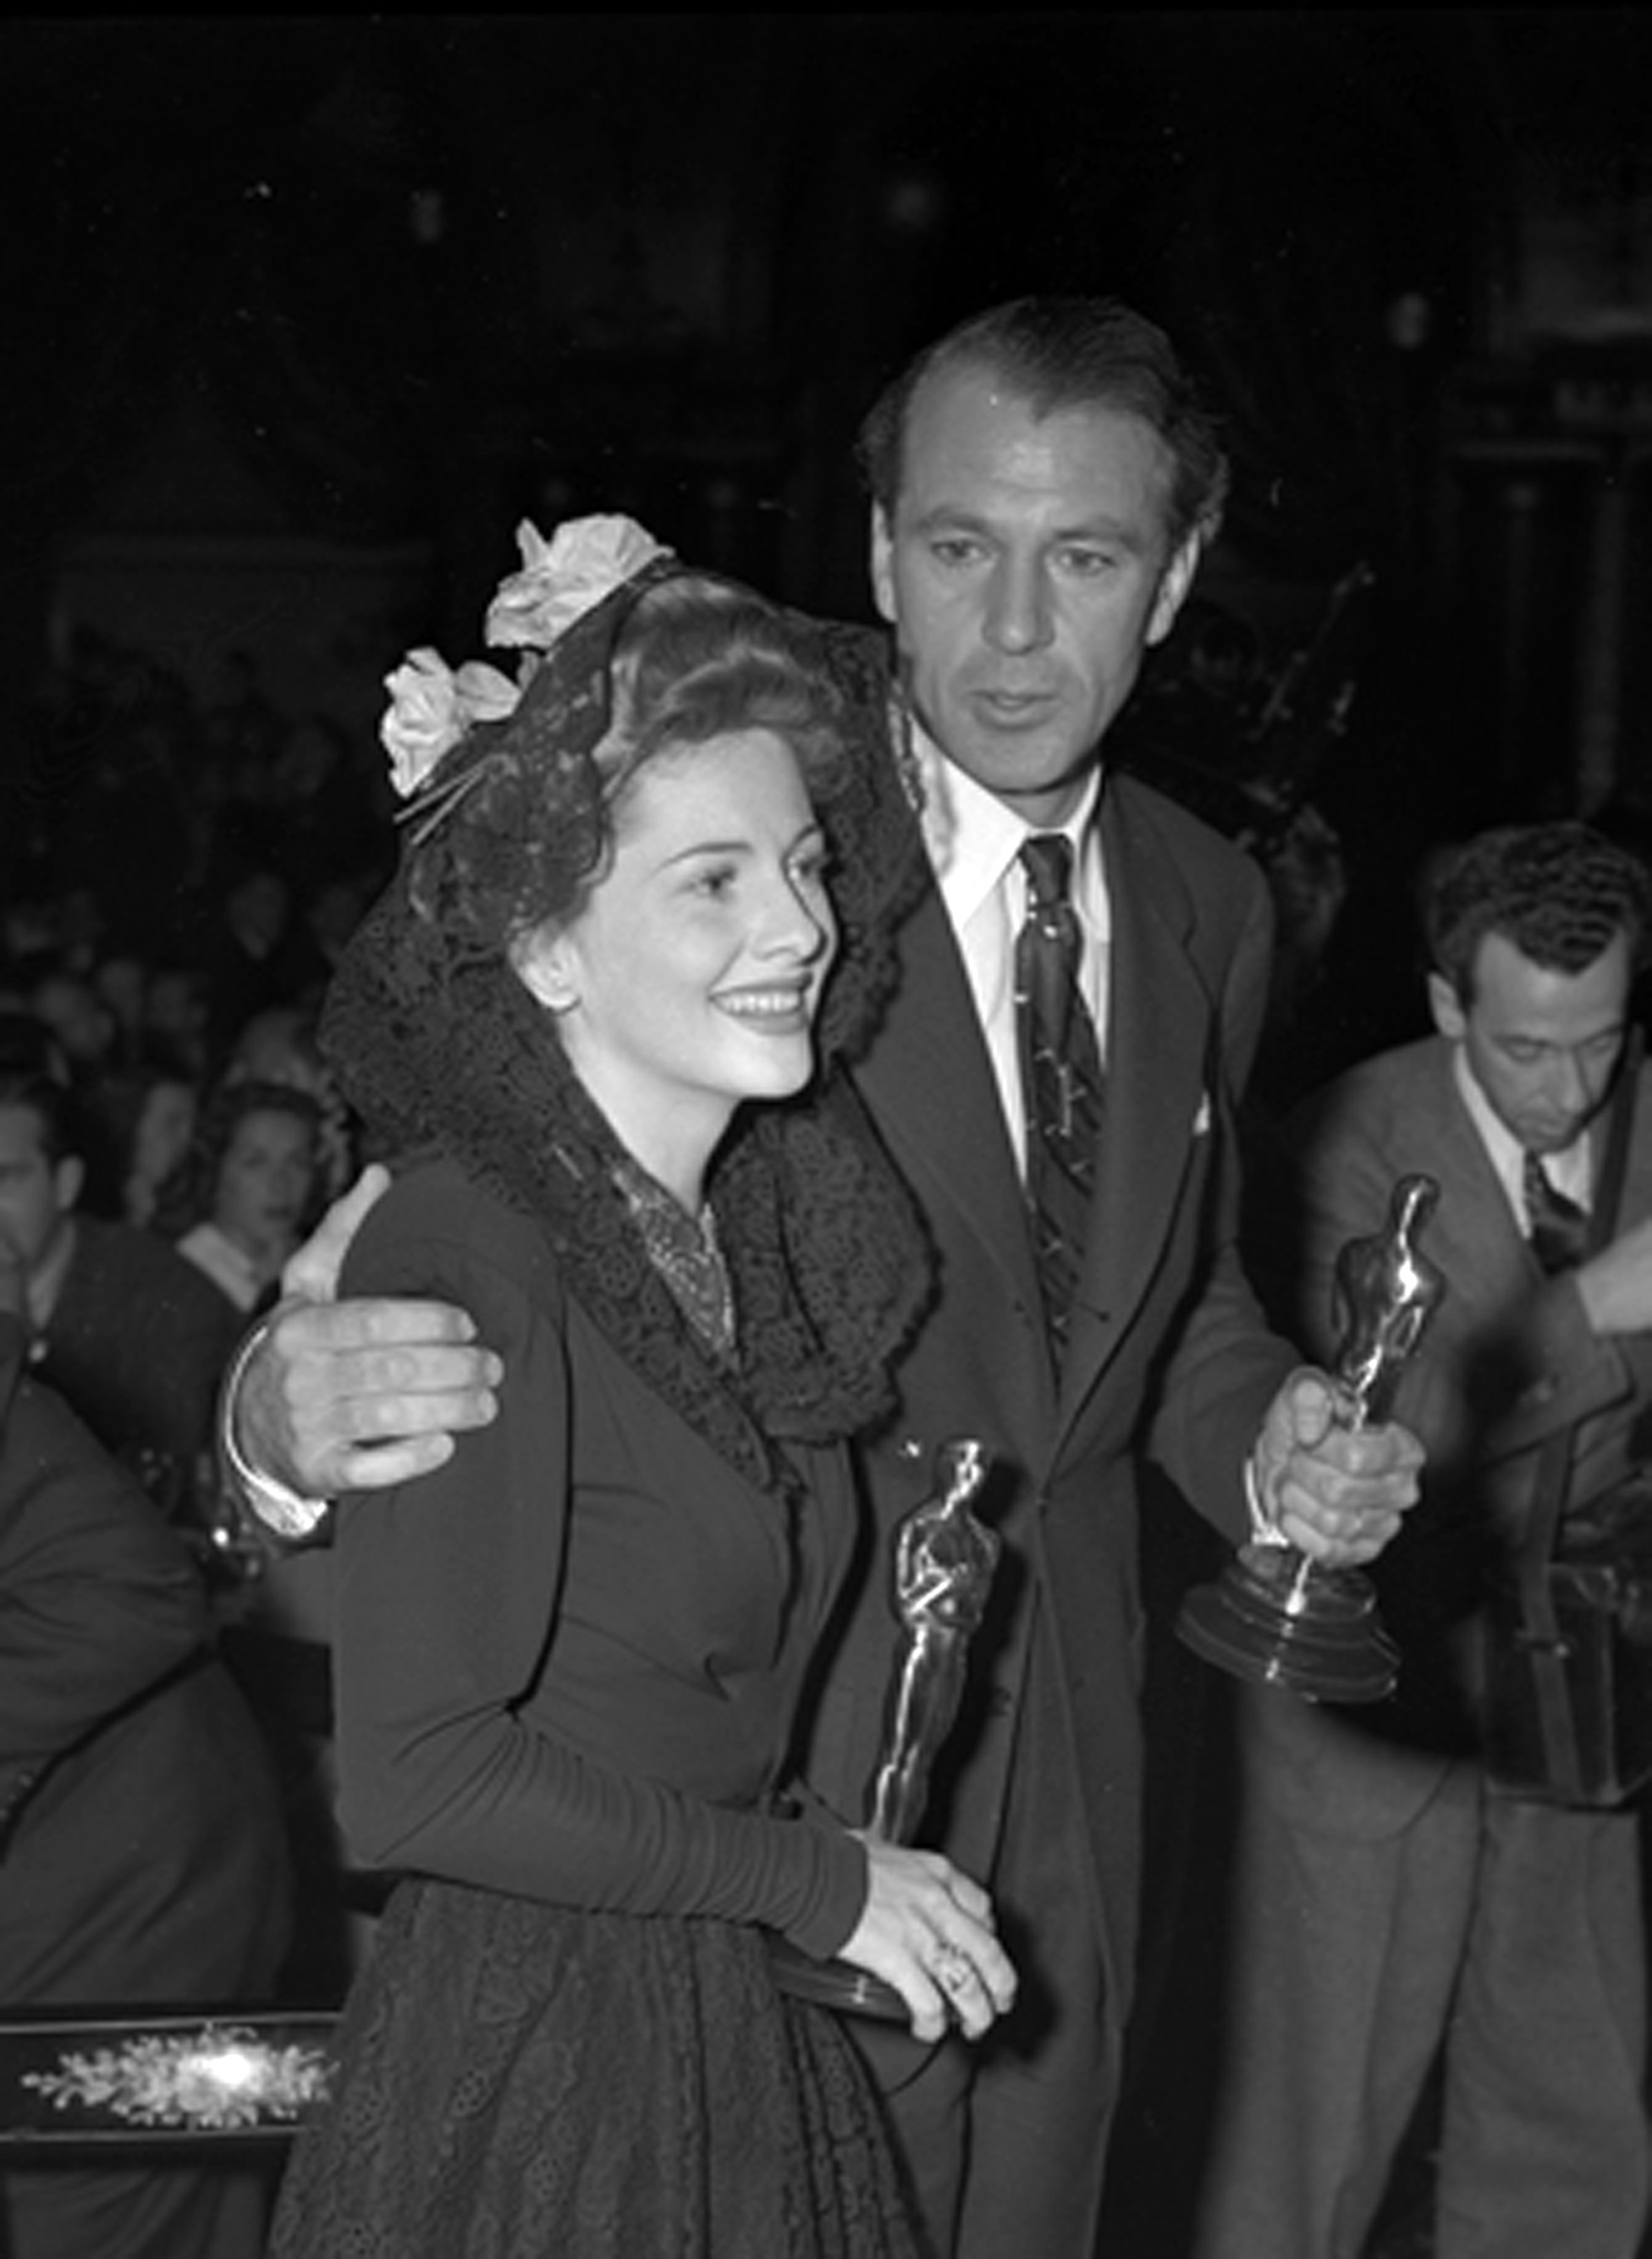 Image Source: Wikimedia Commons/Public Domain/Fontaine andGary Cooperholding their Oscars at the Academy Awards, 1942